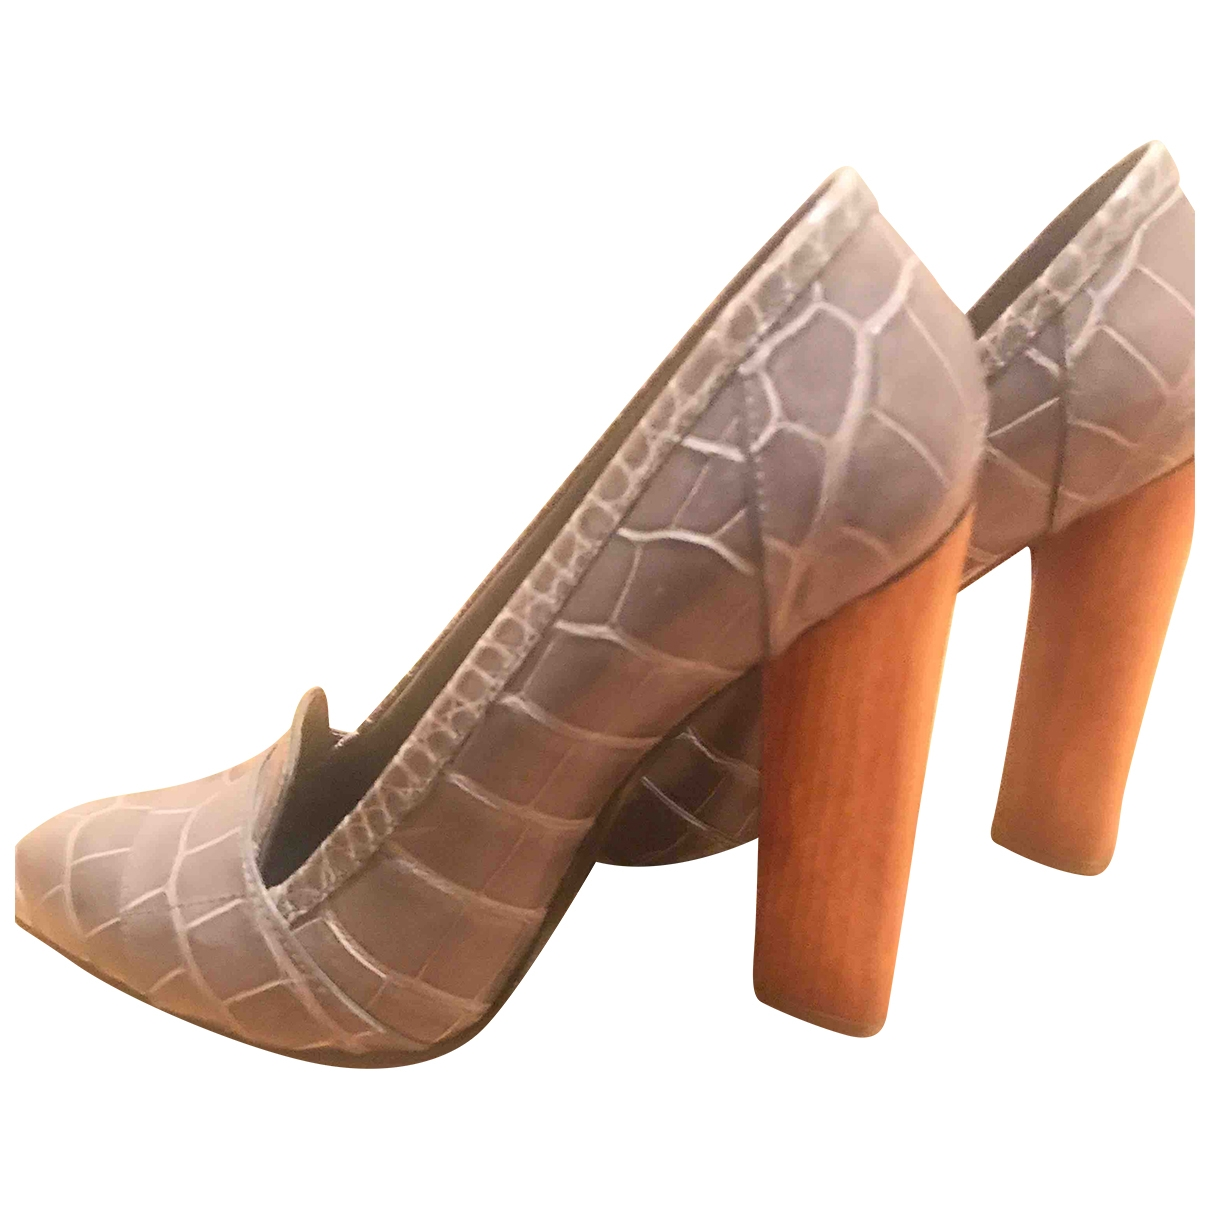 Yves Saint Laurent \N Grey Leather Heels for Women 40 EU